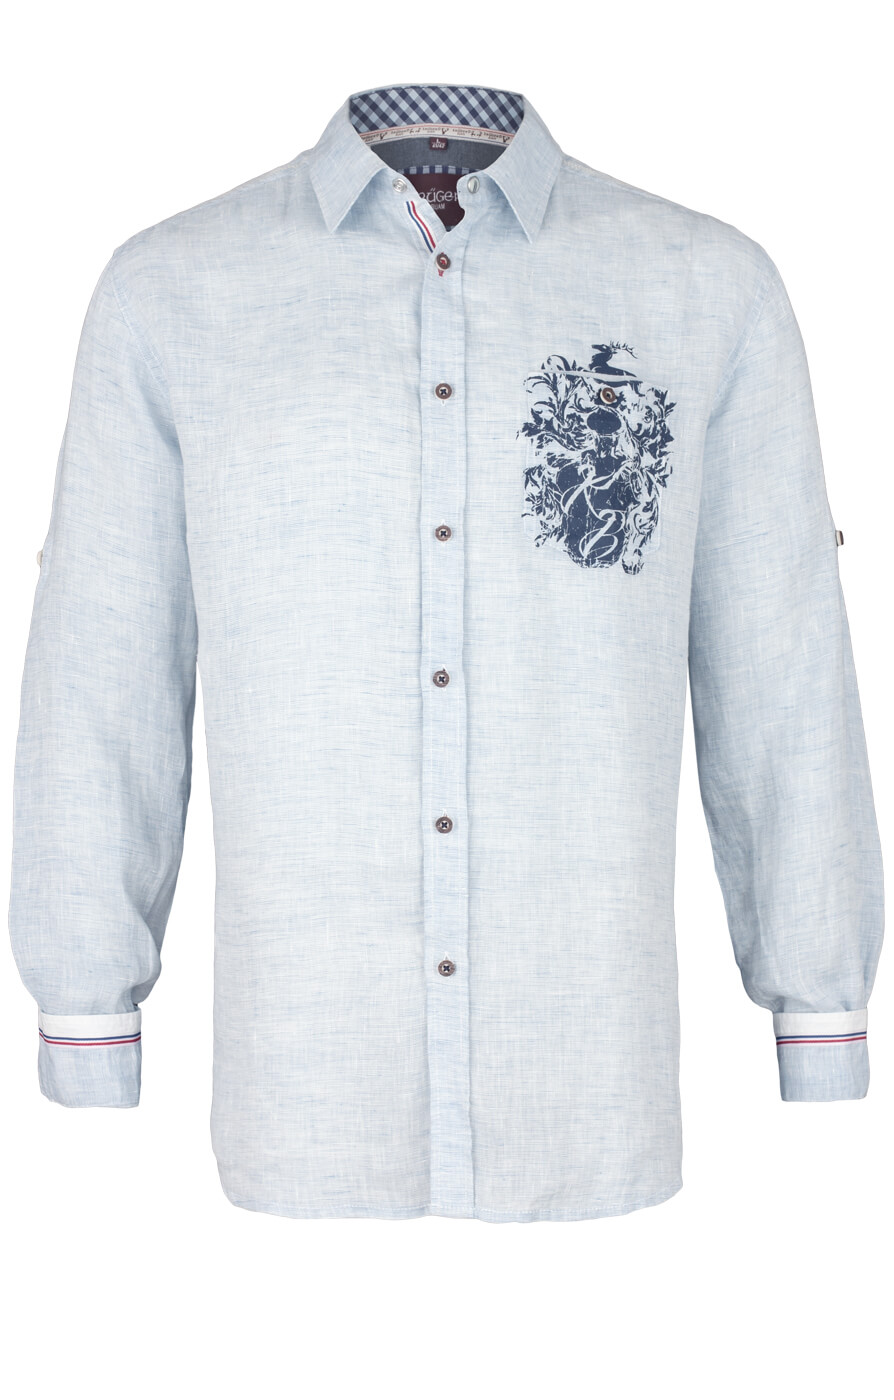 weitere Bilder von German traditional shirt 93105-81 lightblue